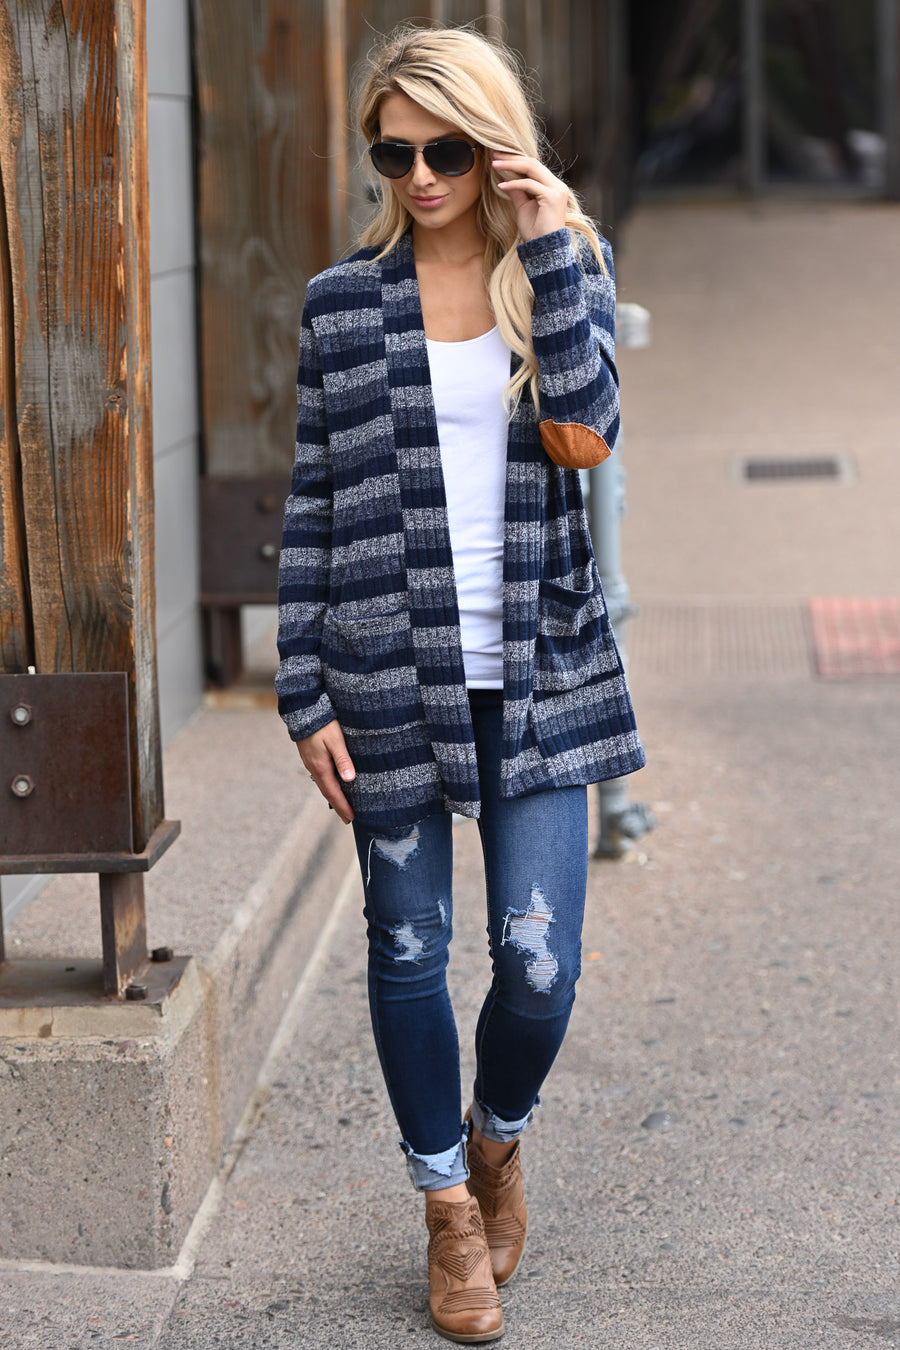 Chill In The Air Striped Cardigan - Navy multi stripe sweater with elbow patches, closet candy boutique 1